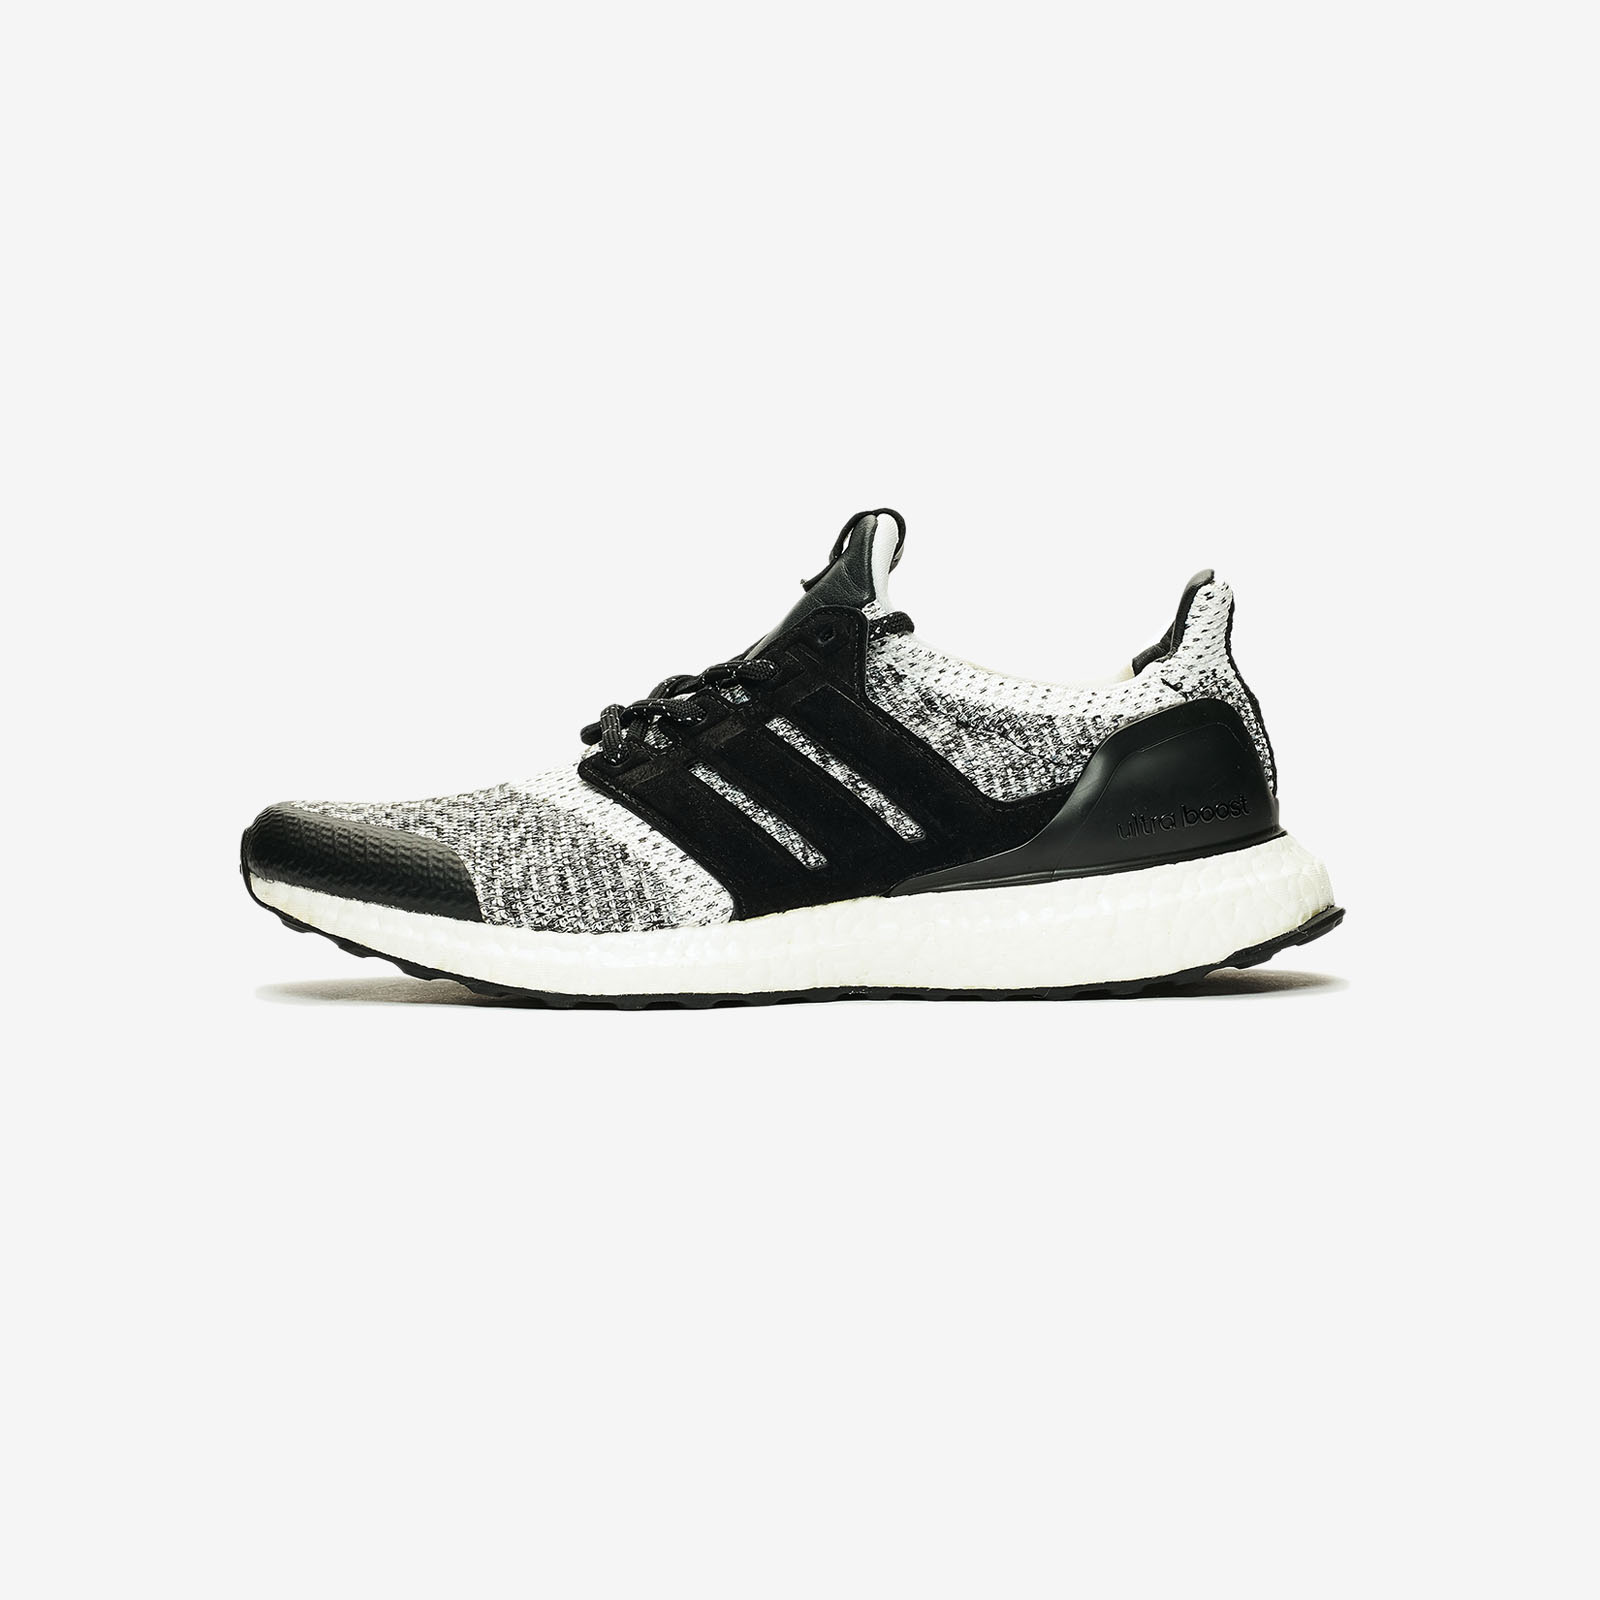 8b56a1837 adidas SNS x Social Status UltraBOOST - By2911 - Sneakersnstuff ...